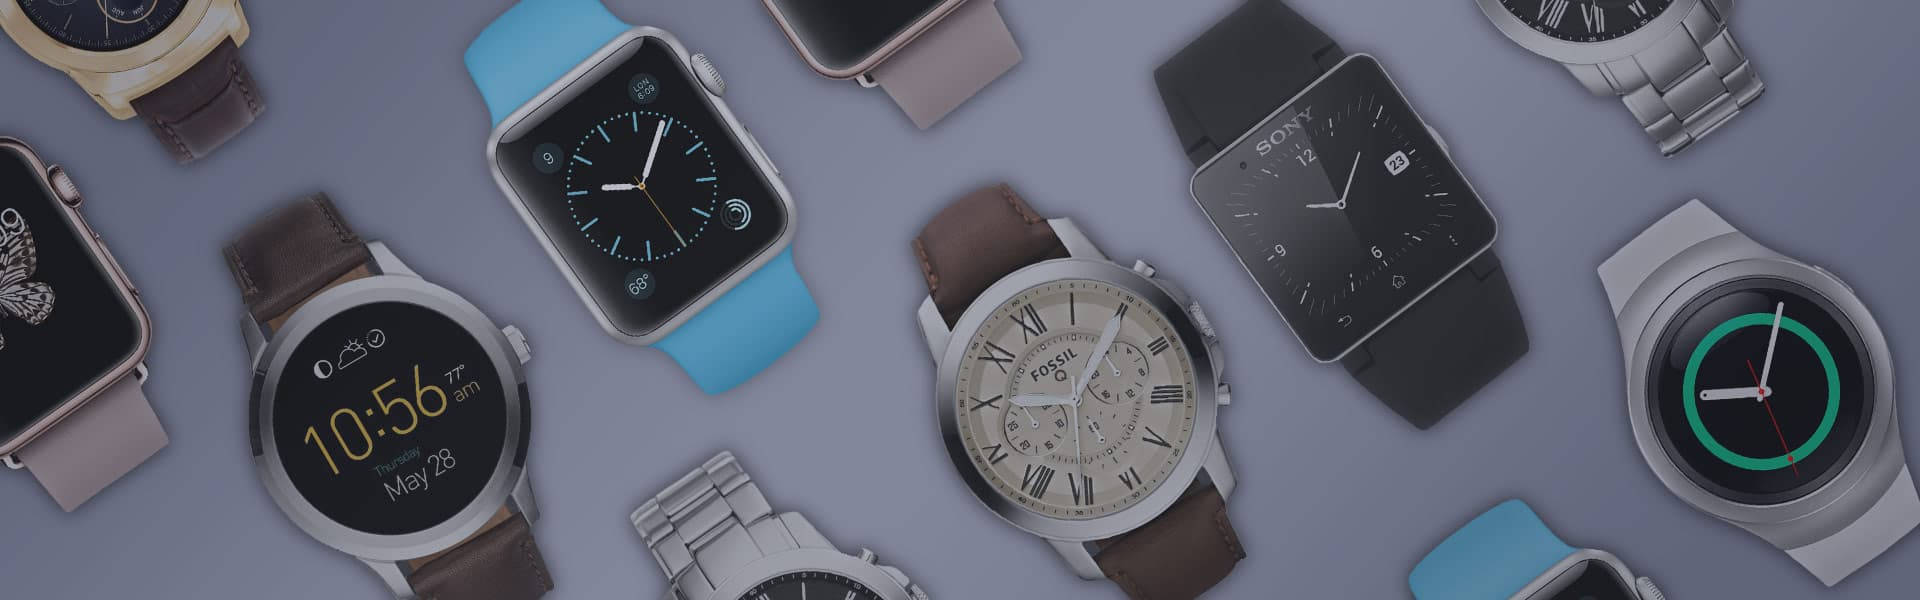 best smart watch under 200